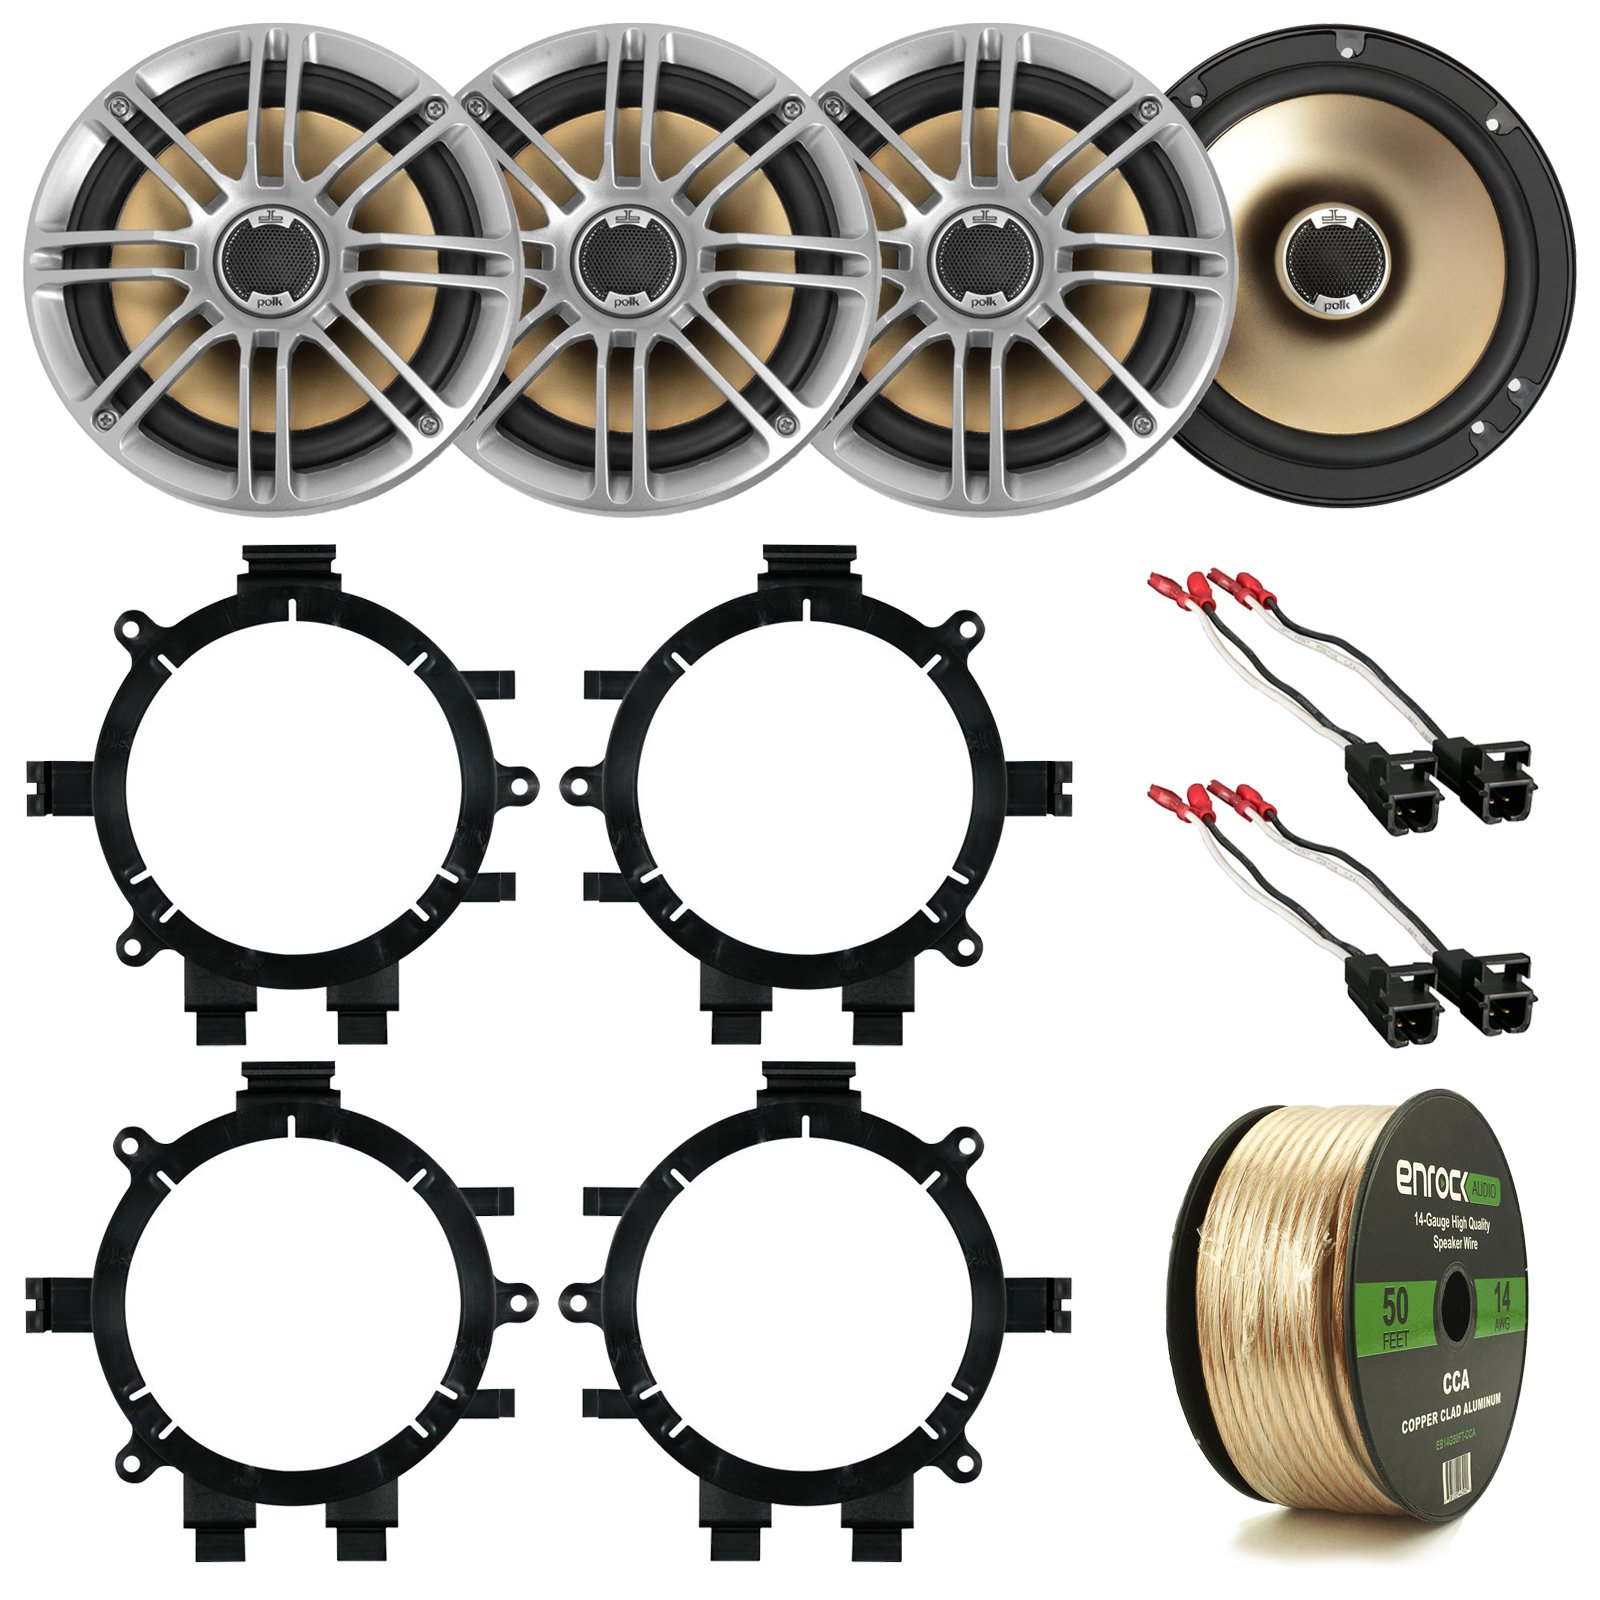 Cheap 4x12 Speaker Find Deals On Line At Alibabacom Metra Wiring Harness Gauge Get Quotations 2 X Polk Audio Db651s 65 180w Car Marine Coaxial System